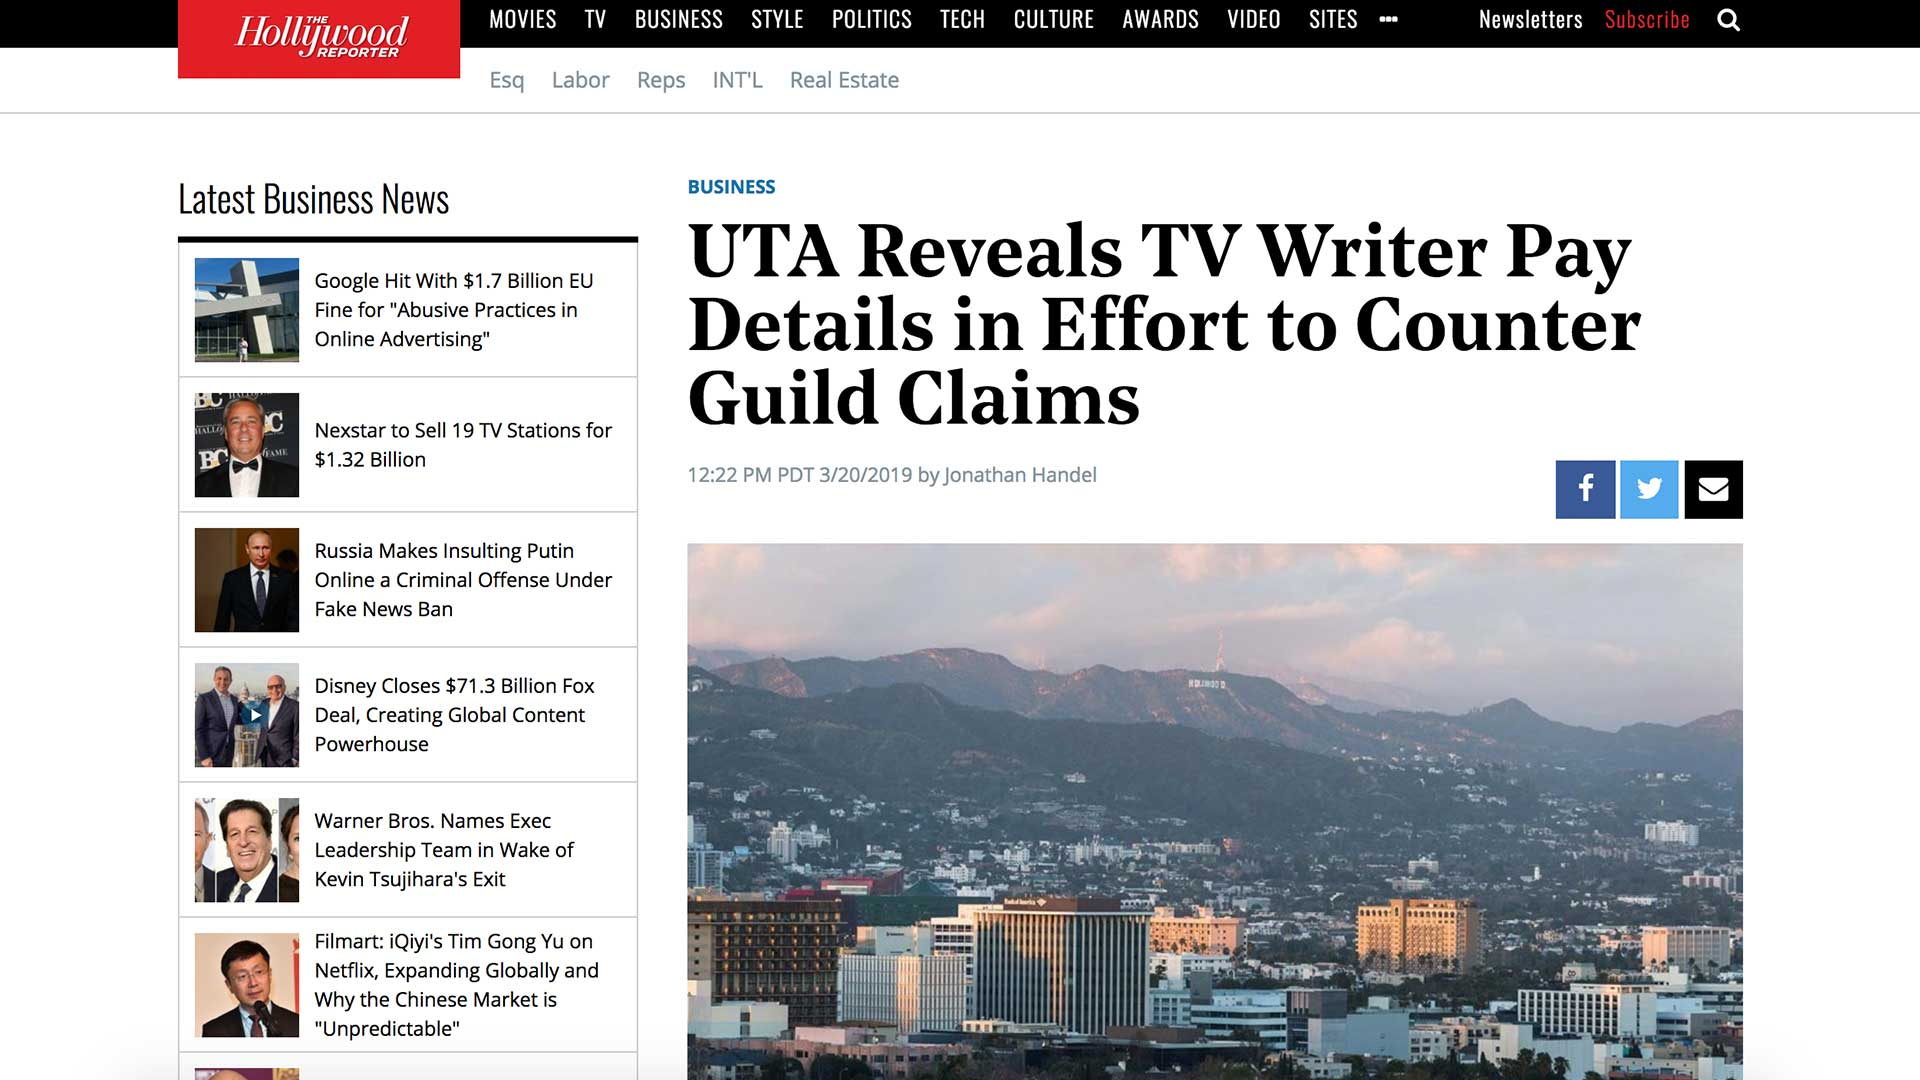 Fairness Rocks News UTA Reveals TV Writer Pay Details in Effort to Counter Guild Claims